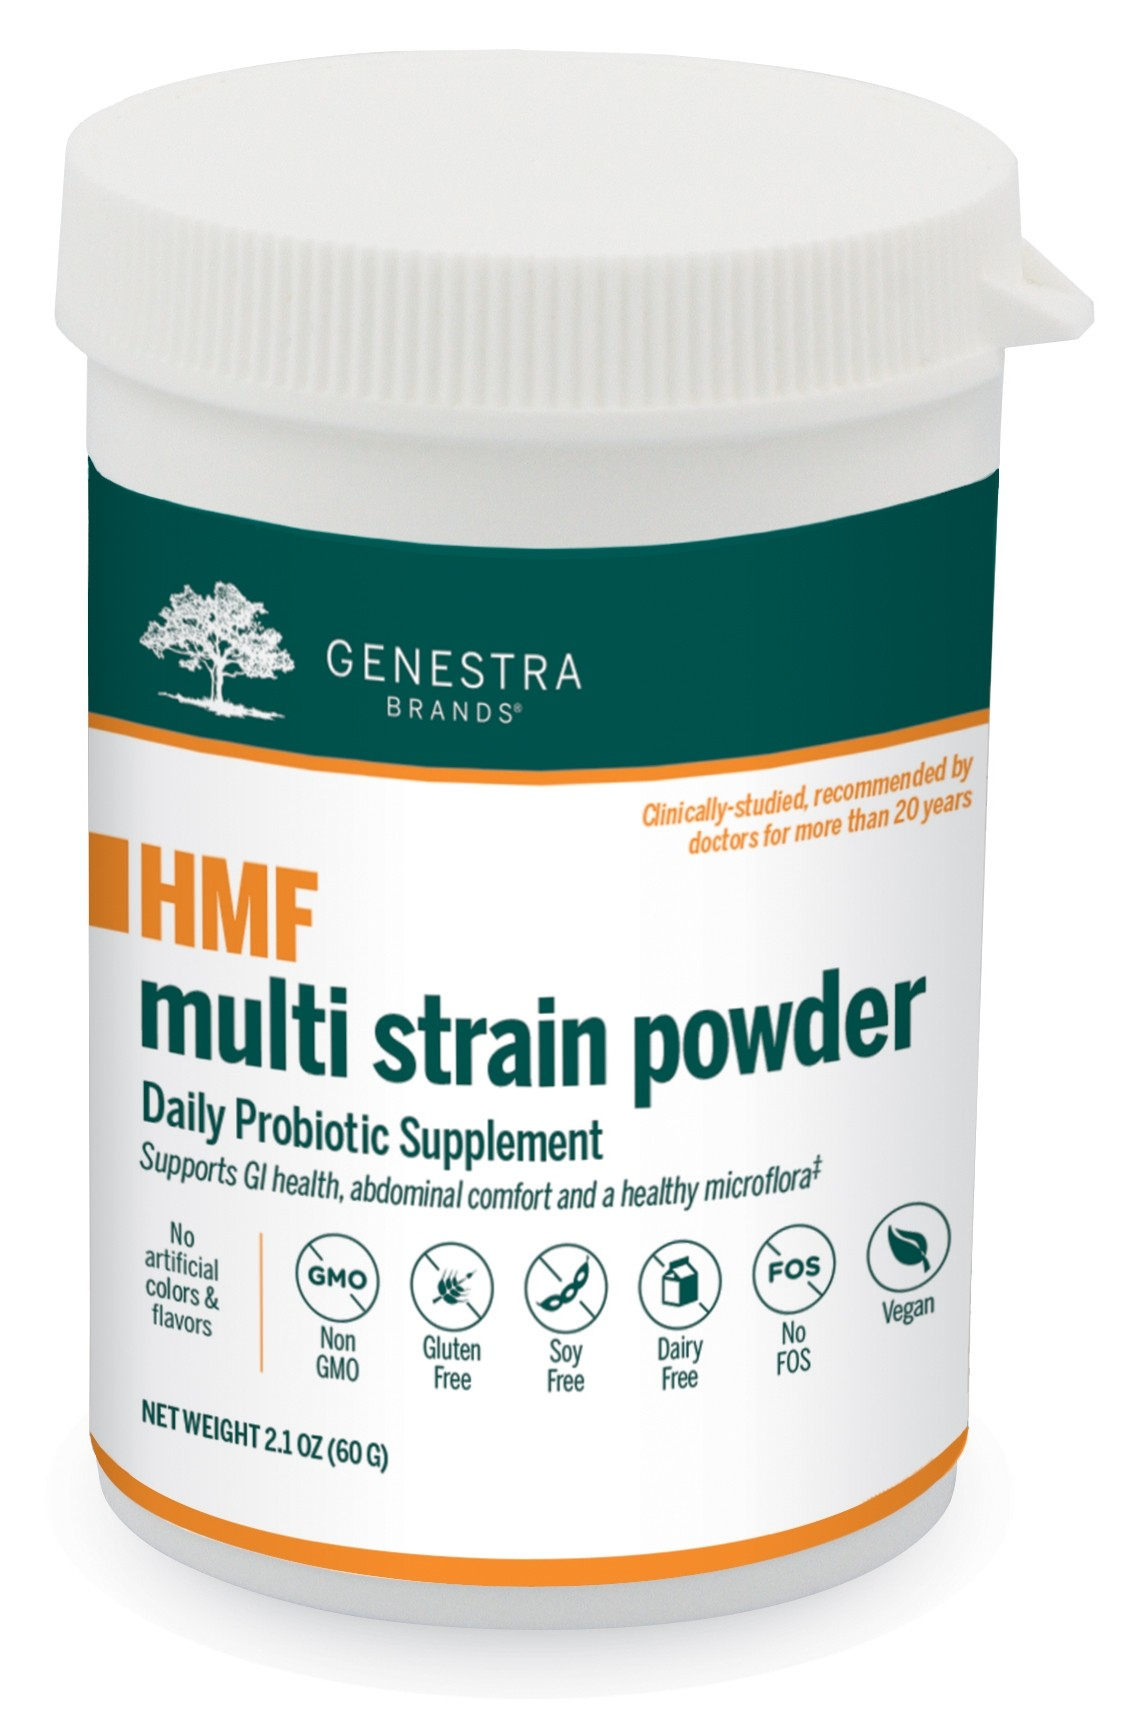 HMF Multi Strain Powder